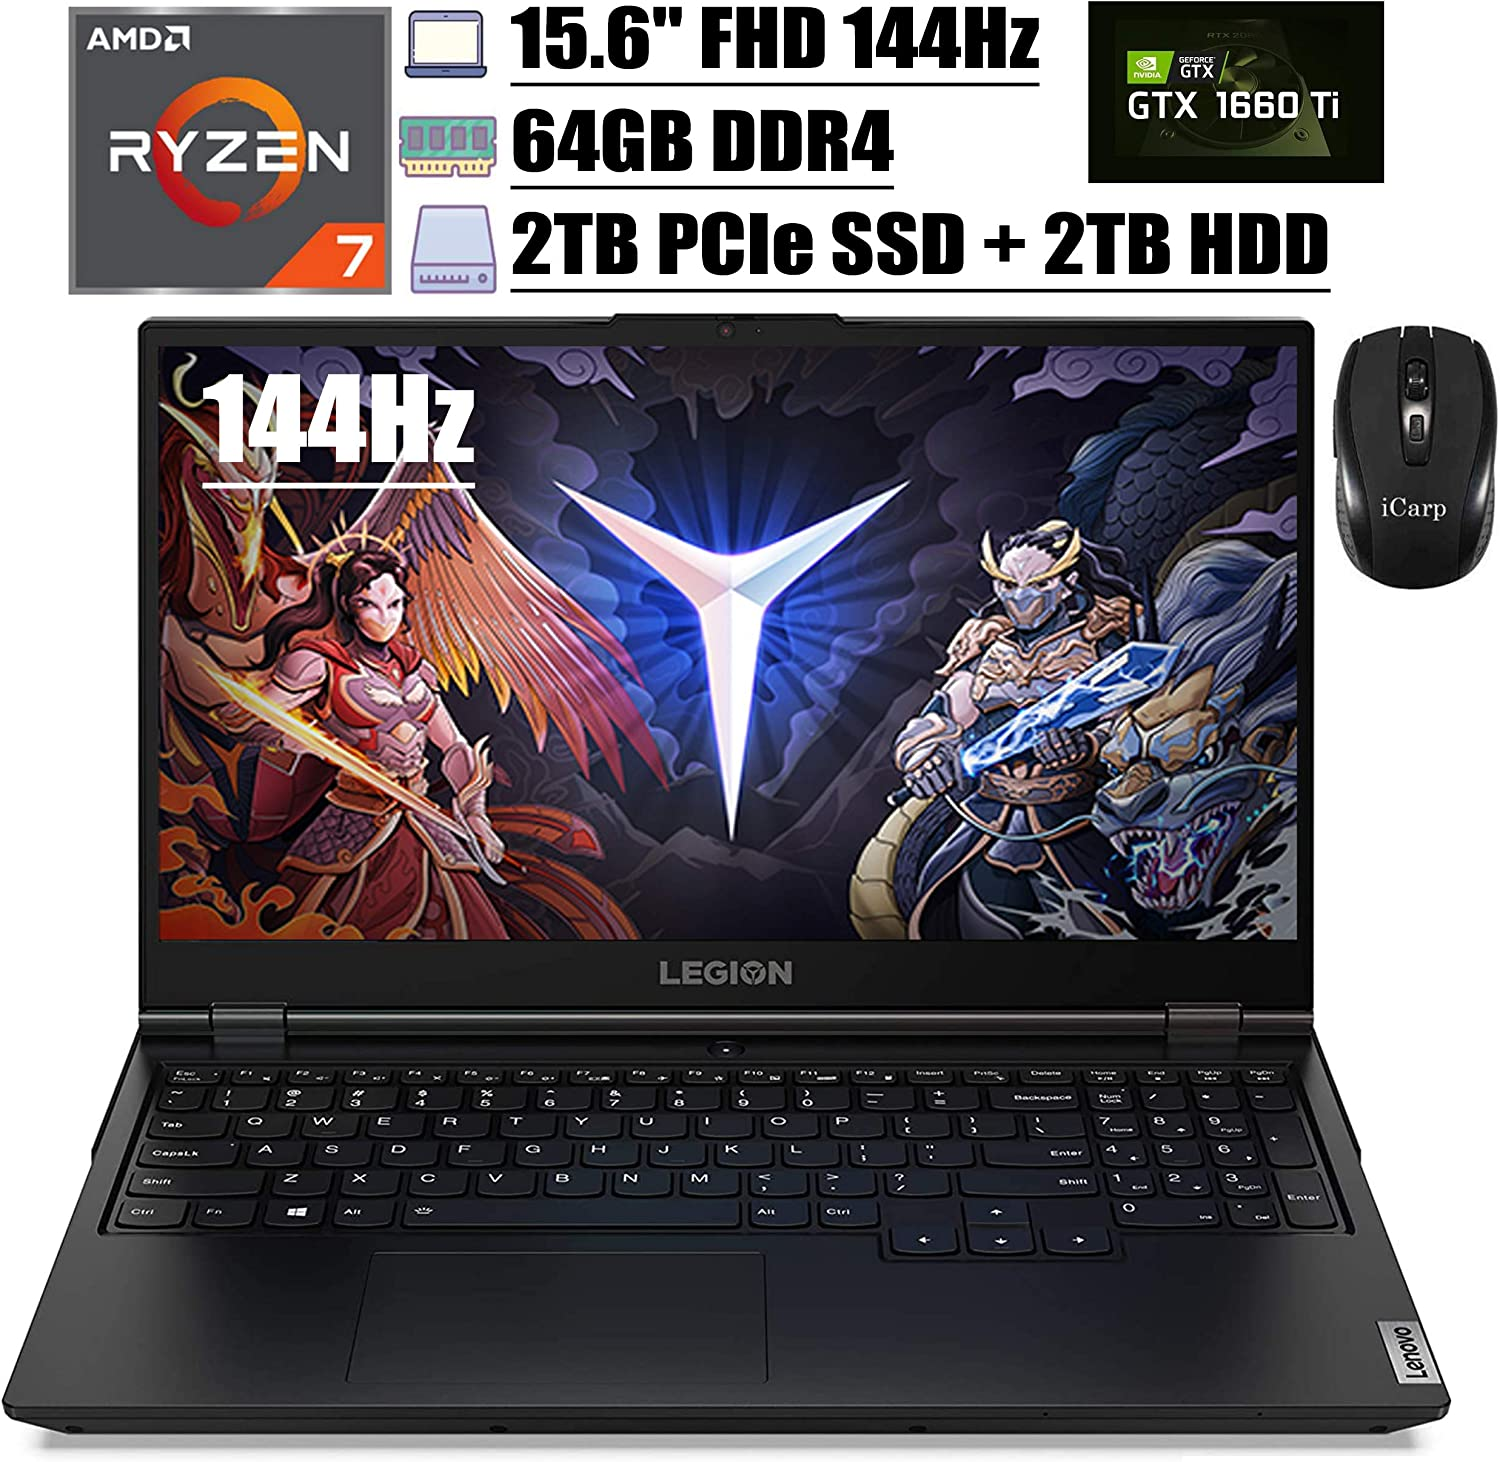 "2020 Flagship Lenovo Legion 5 Gaming Laptop 15.6"" FHD 144Hz AMD Octa-Core Ryzen 7 4800H (Beats I7-9750H) 64GB DDR4 2TB PCIe SSD 2TB HDD GTX 1660Ti 6G Backlit Webcam Win 10 + iCarp Wireless Mouse"